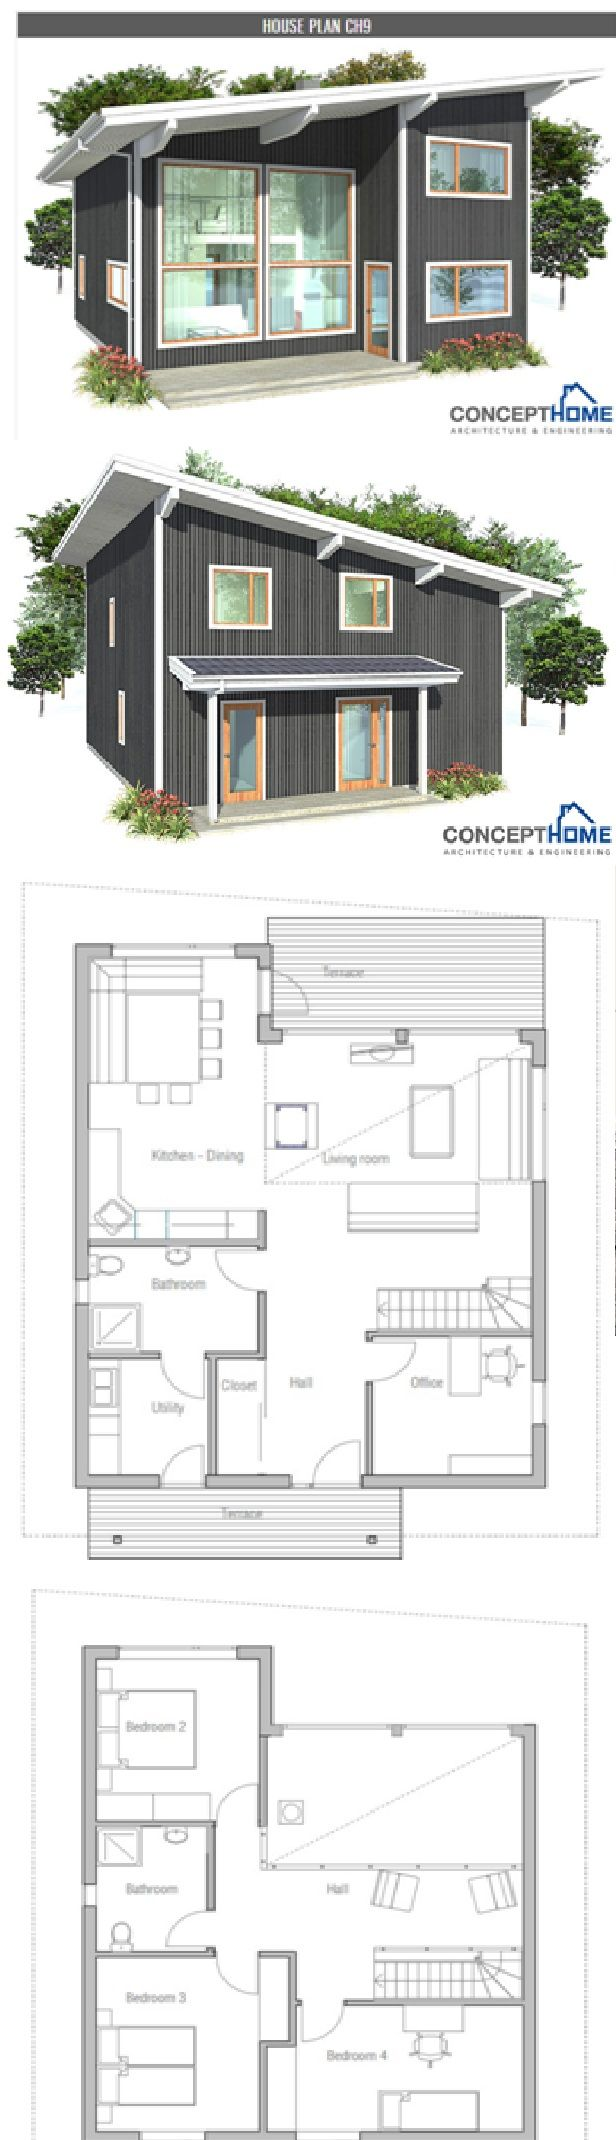 Concept Homes Ch9 Main Floor 980 Sq Ft House Plans Building A Container Home House Design